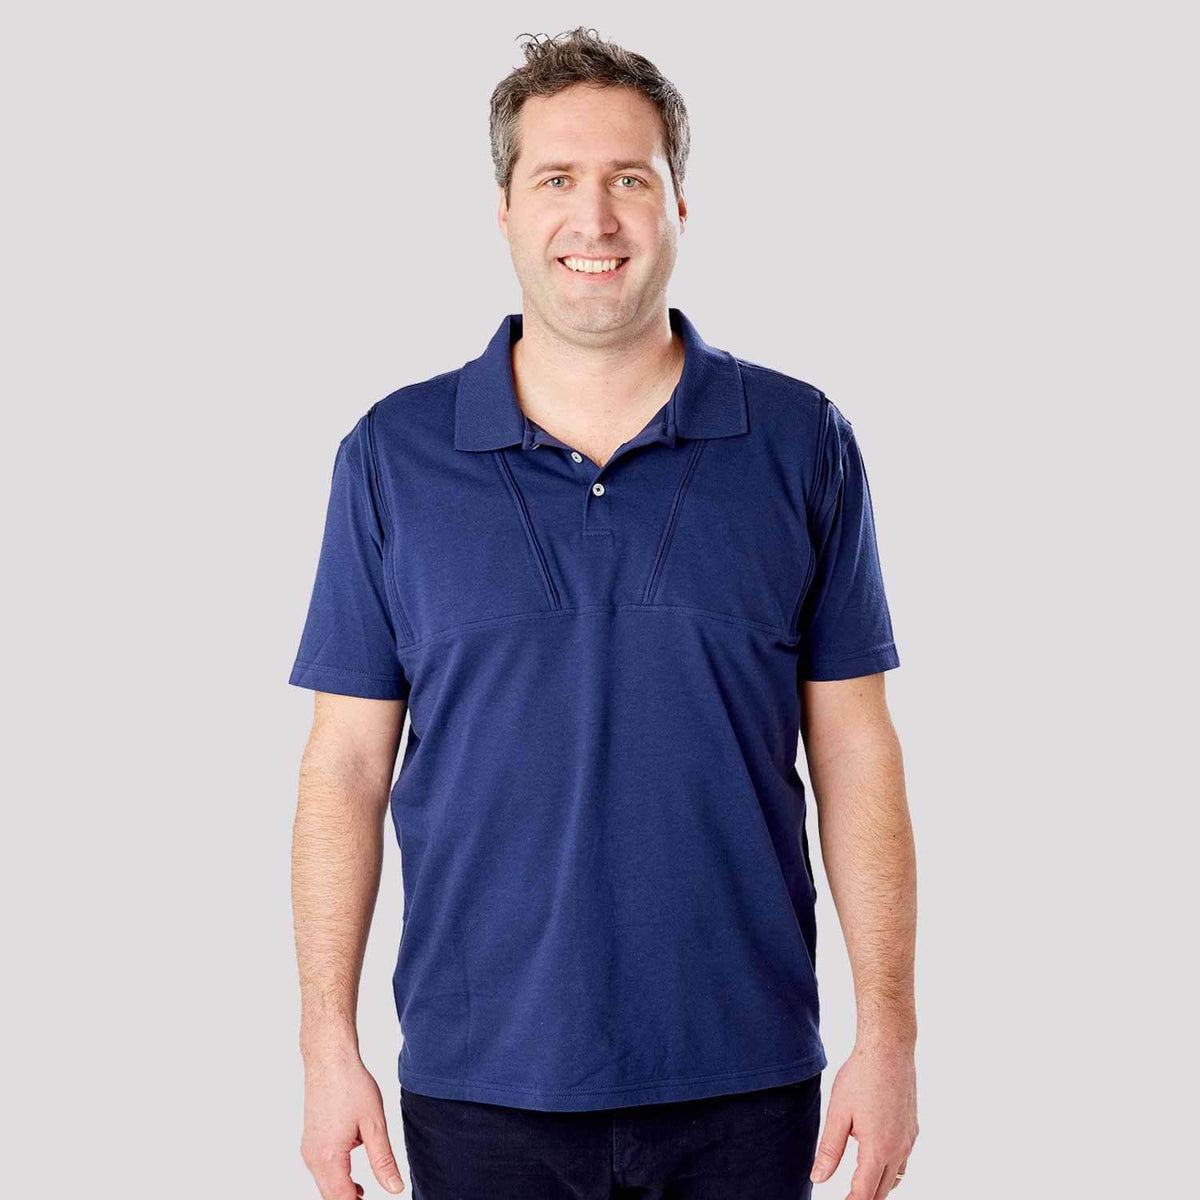 Men's Dual Chest Port Access Polo